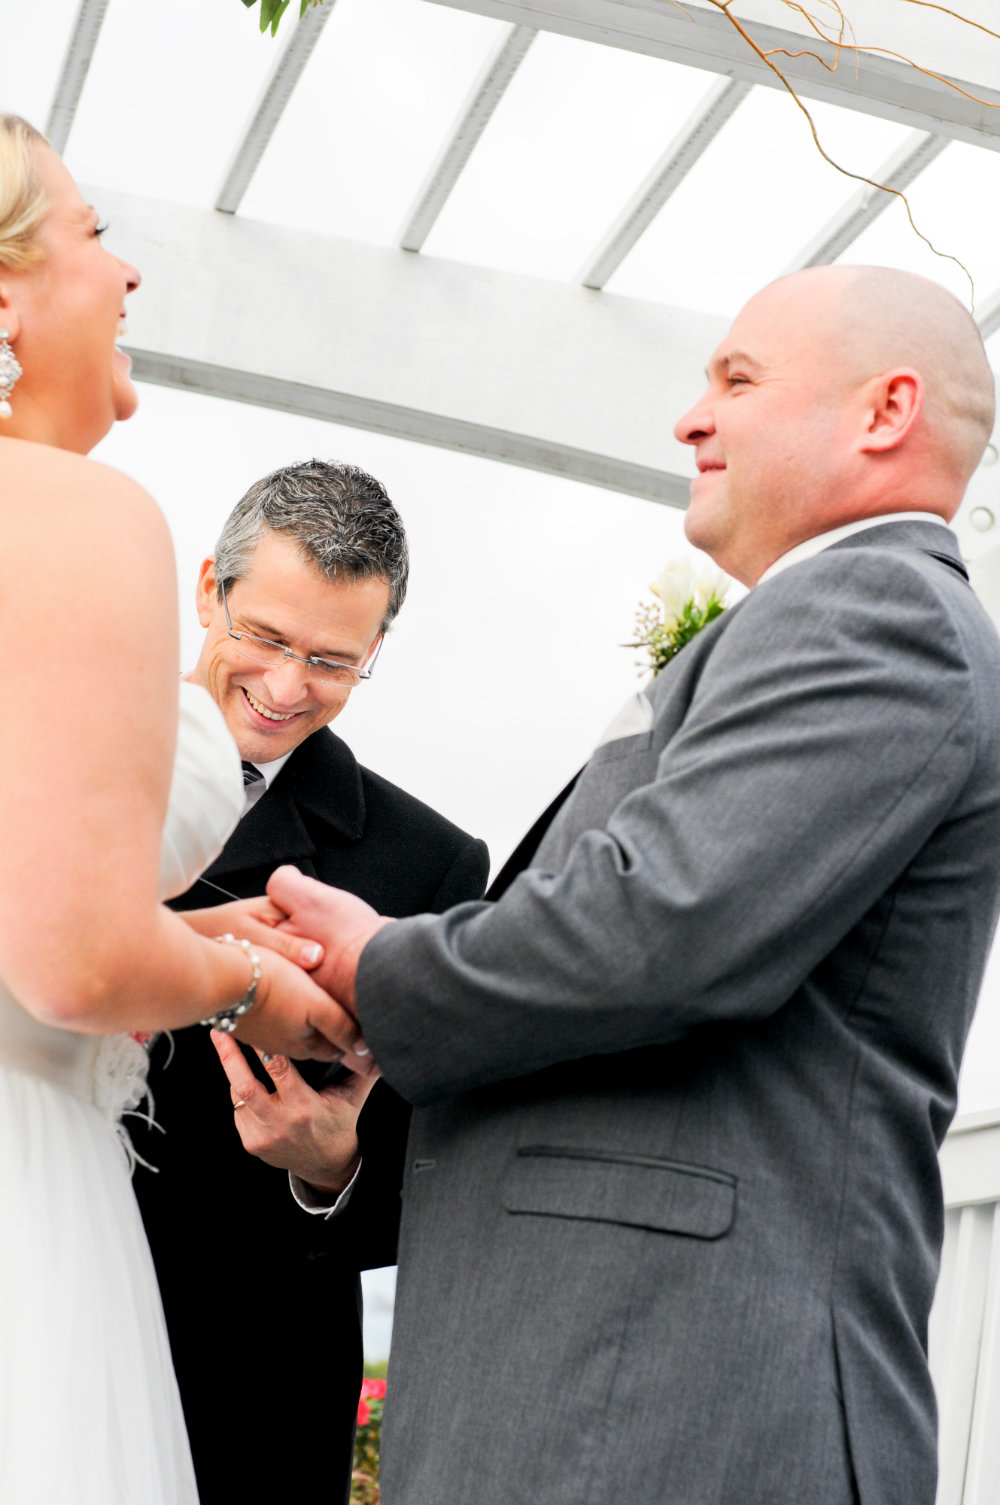 Wedding officiant, Damian King, of United Marriage Services, Columbus, OH